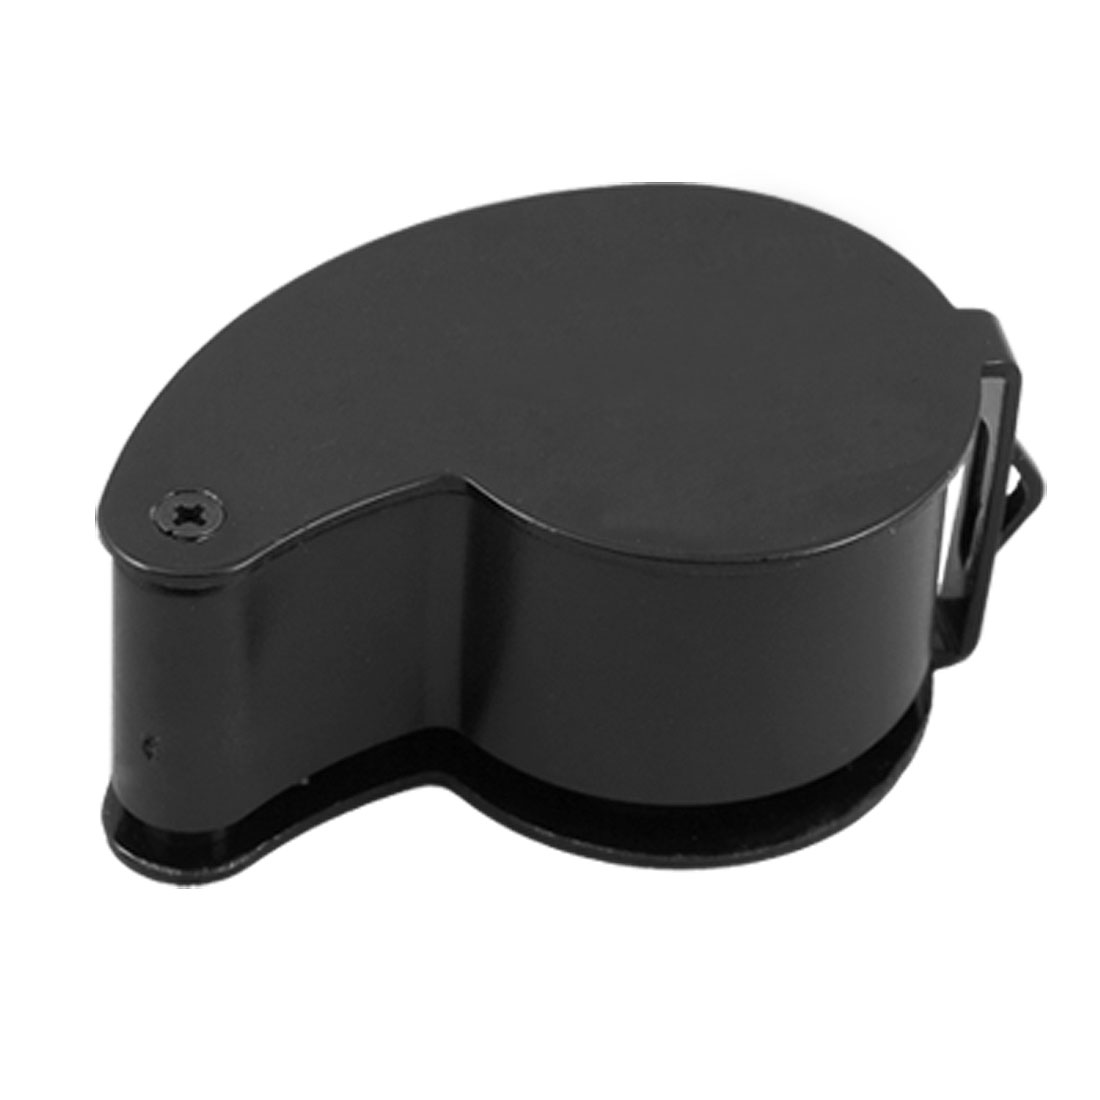 Black LED Light Whistle Shape Jewelry Manifier Loupe